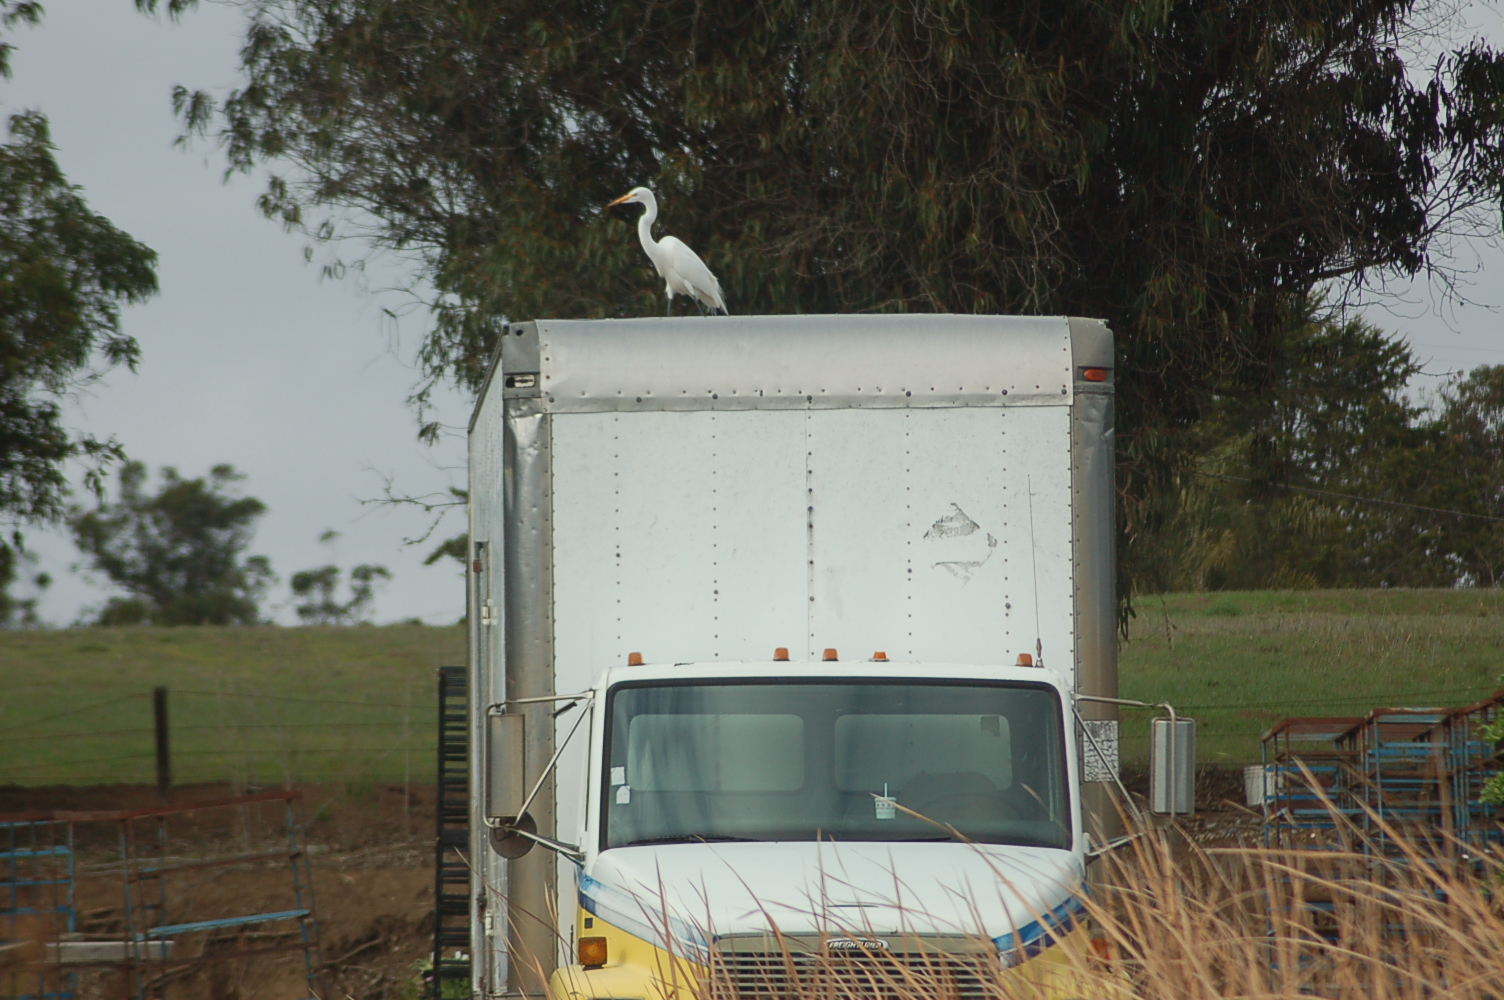 Snowy Egret on delivery truck